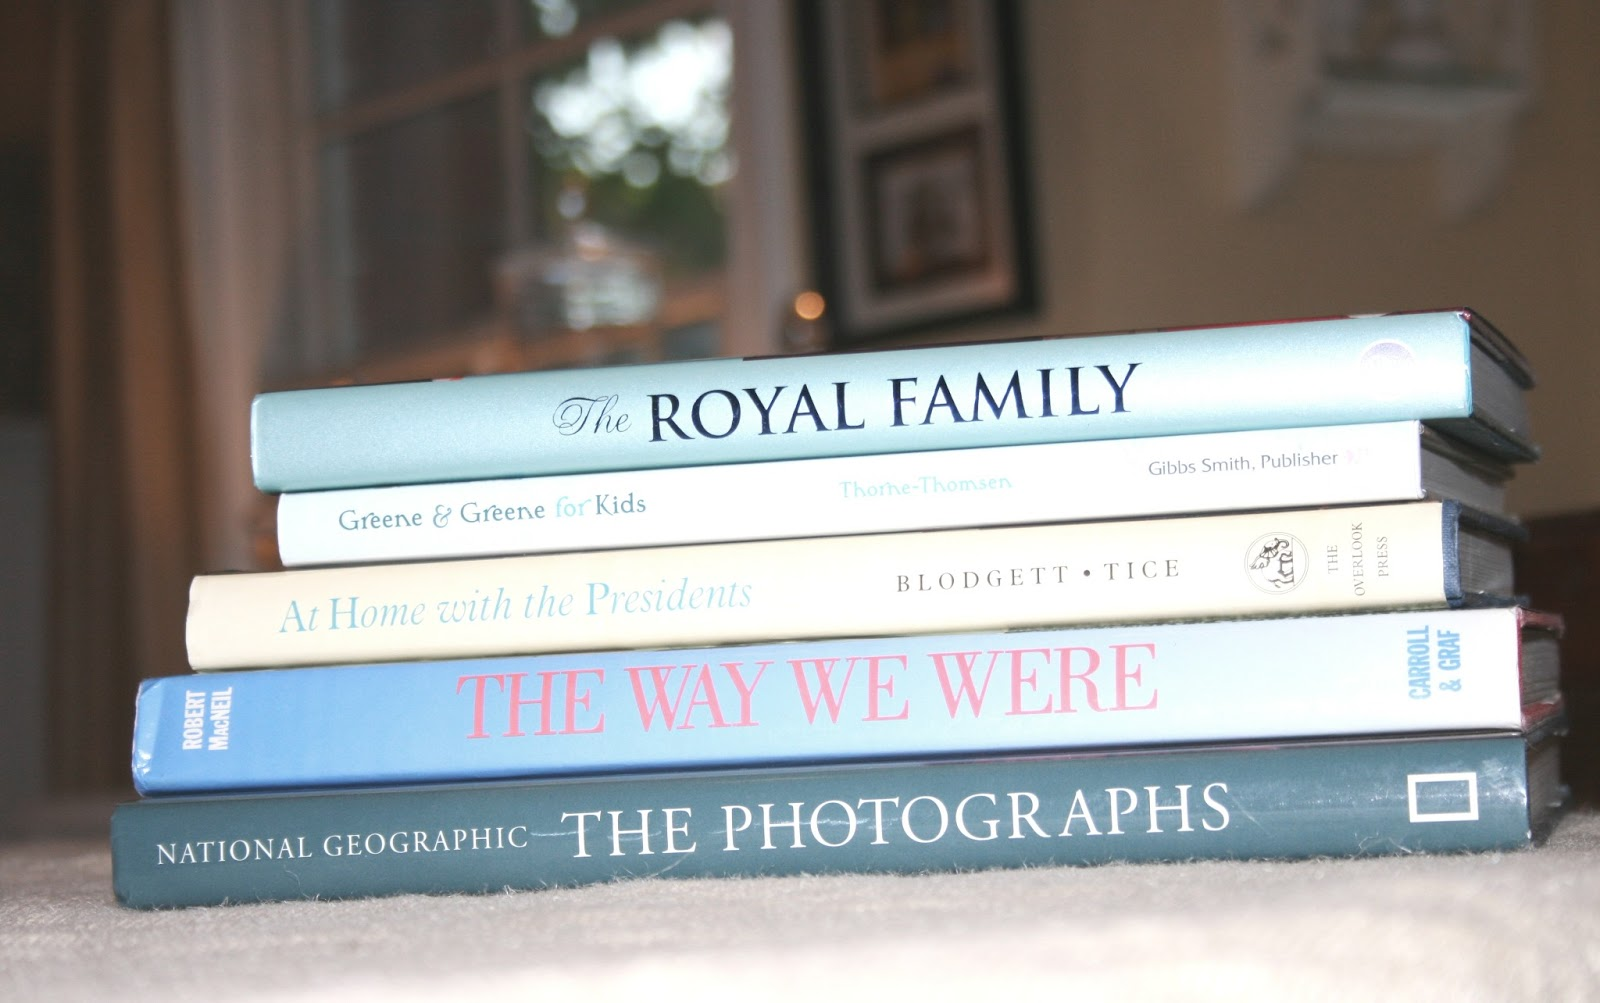 Superior Great Inexpensive Coffee Table Books